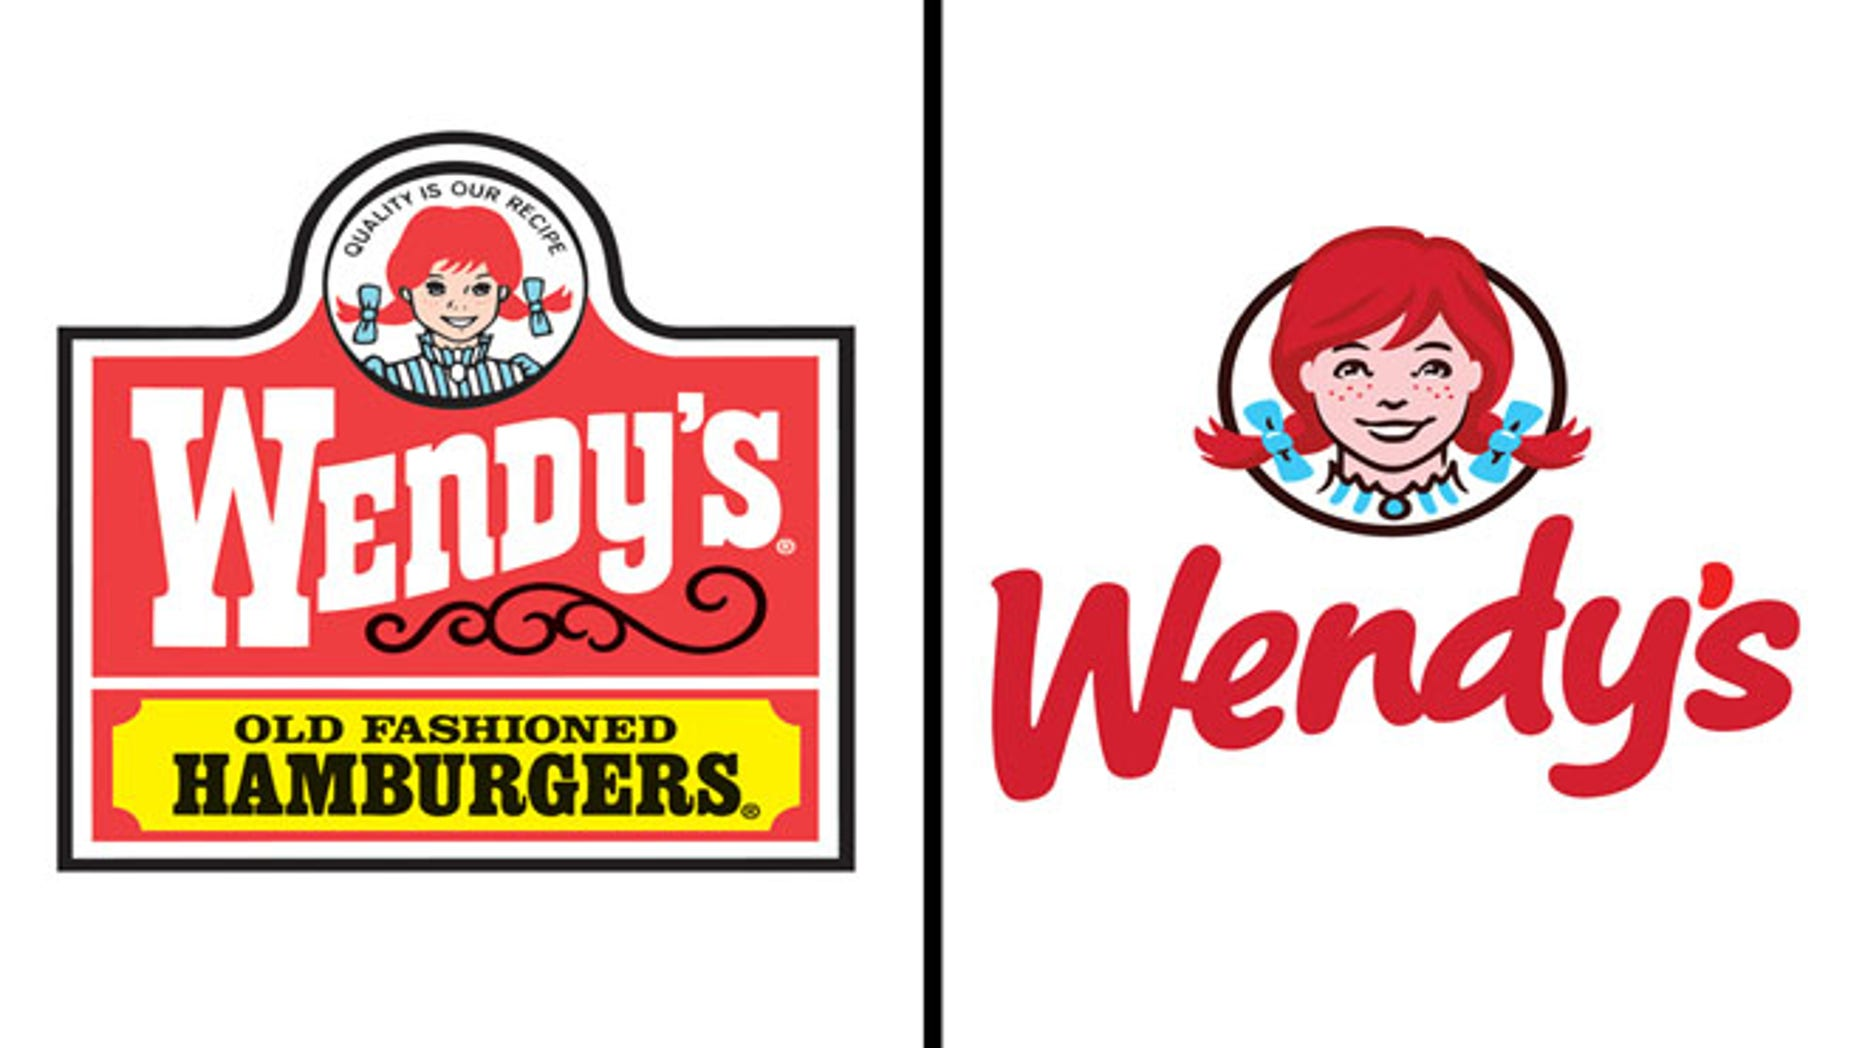 Wendy's original logo, left, and new logo, right